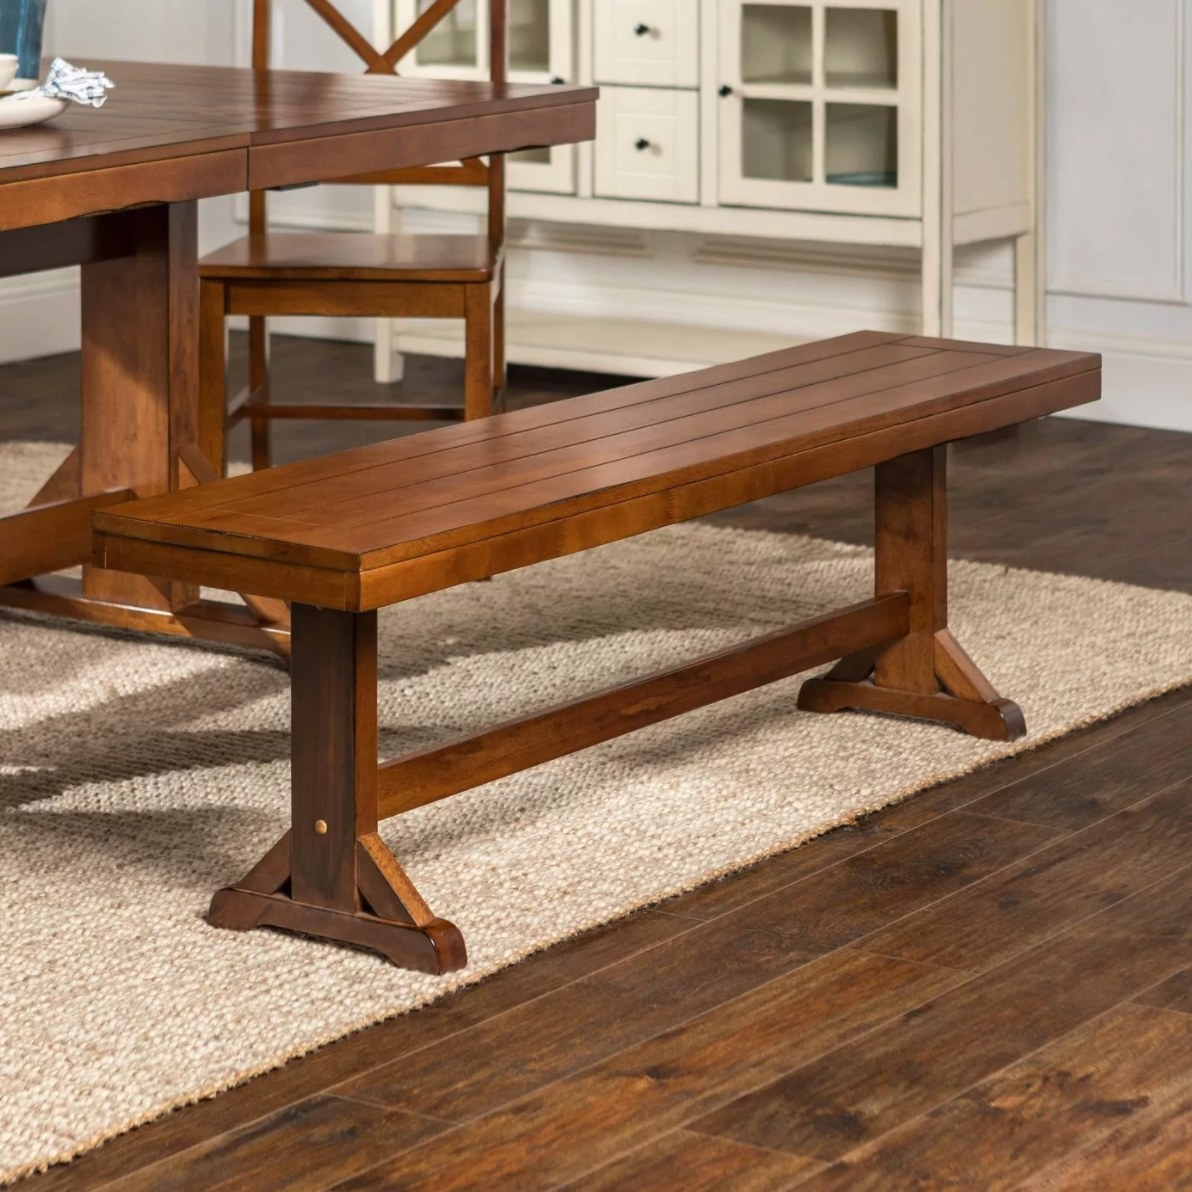 The antique kitchen dining bench